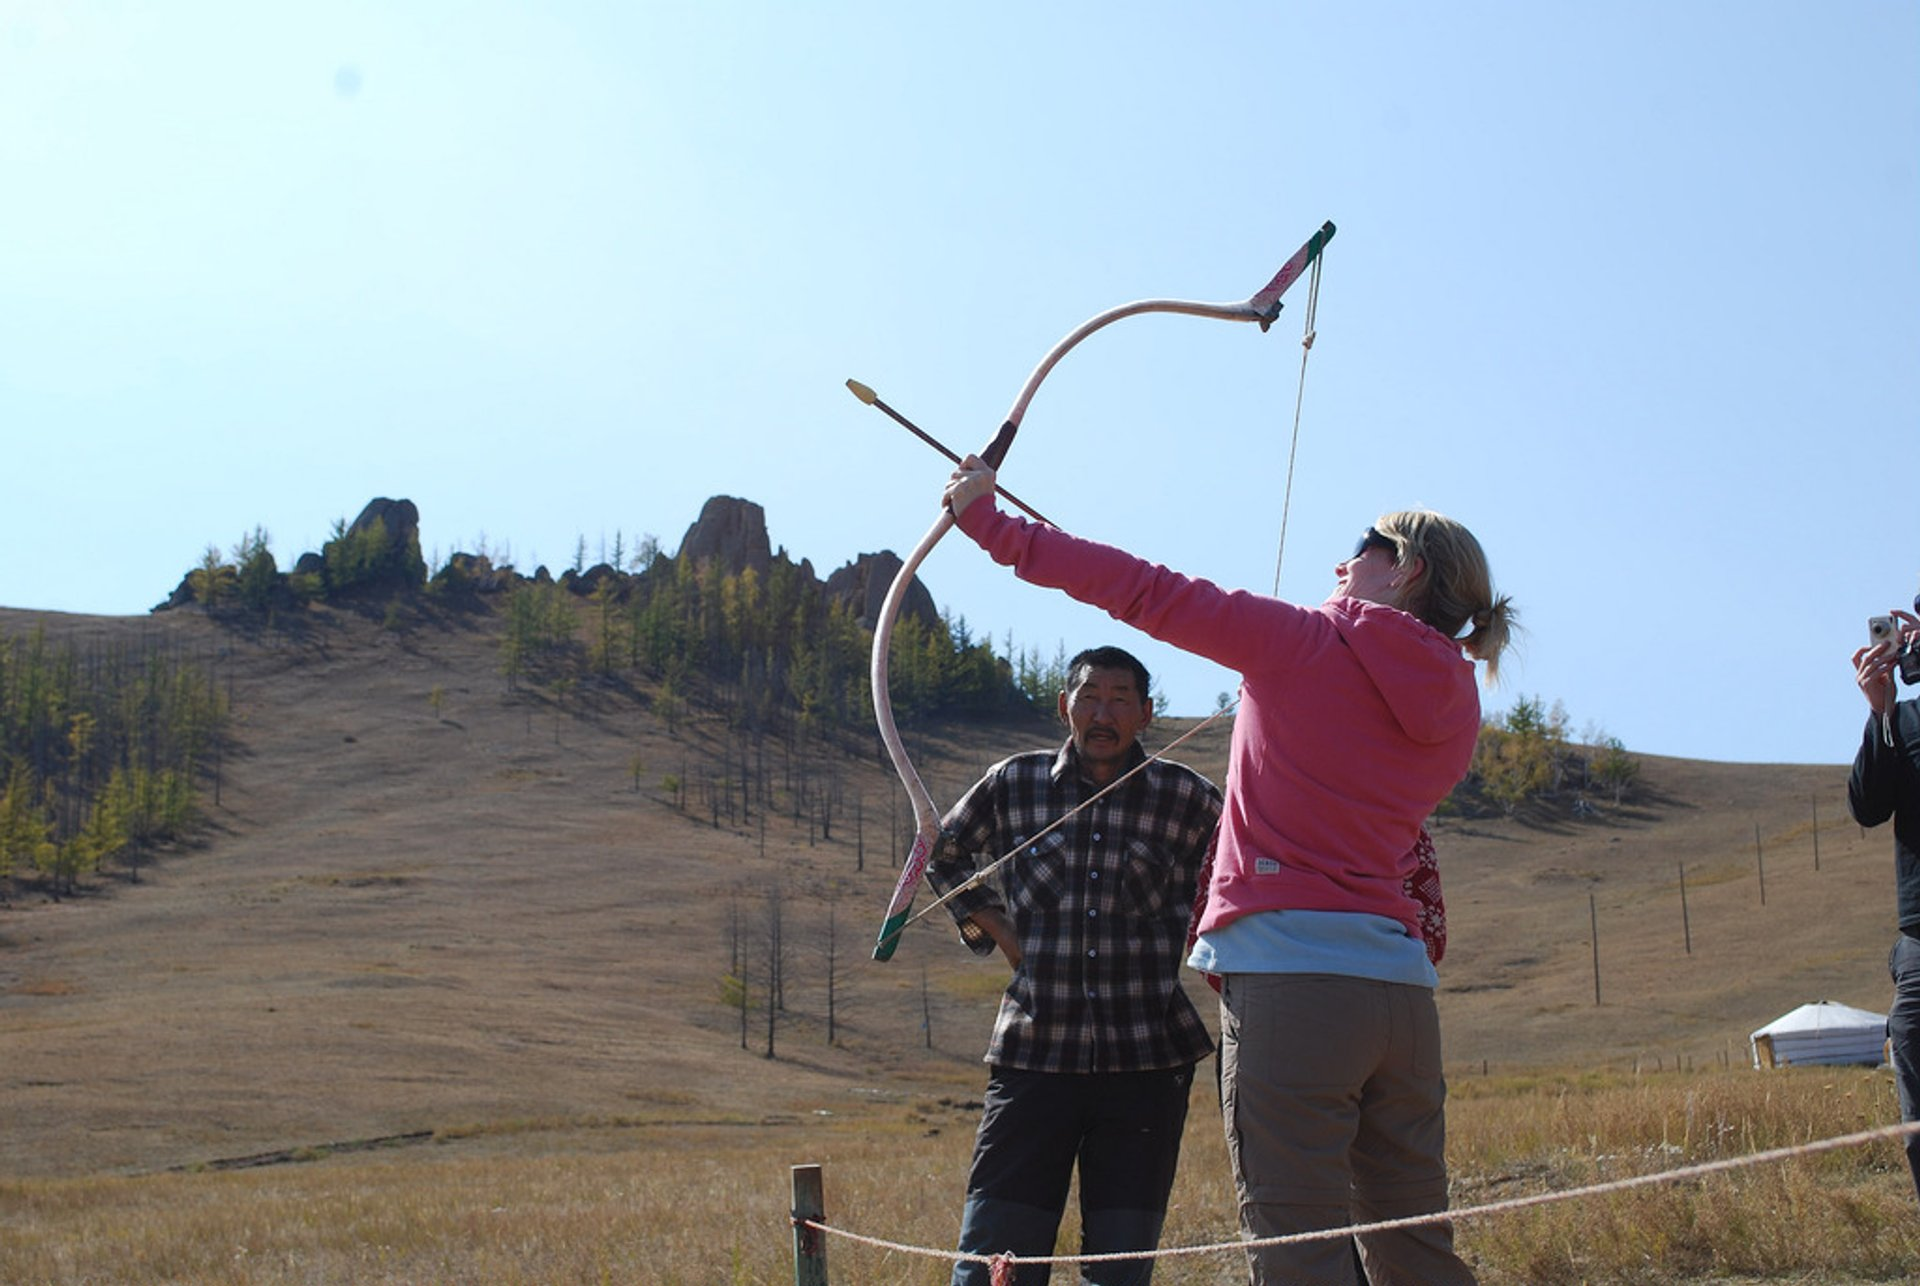 Archery lesson in ger camp 2020